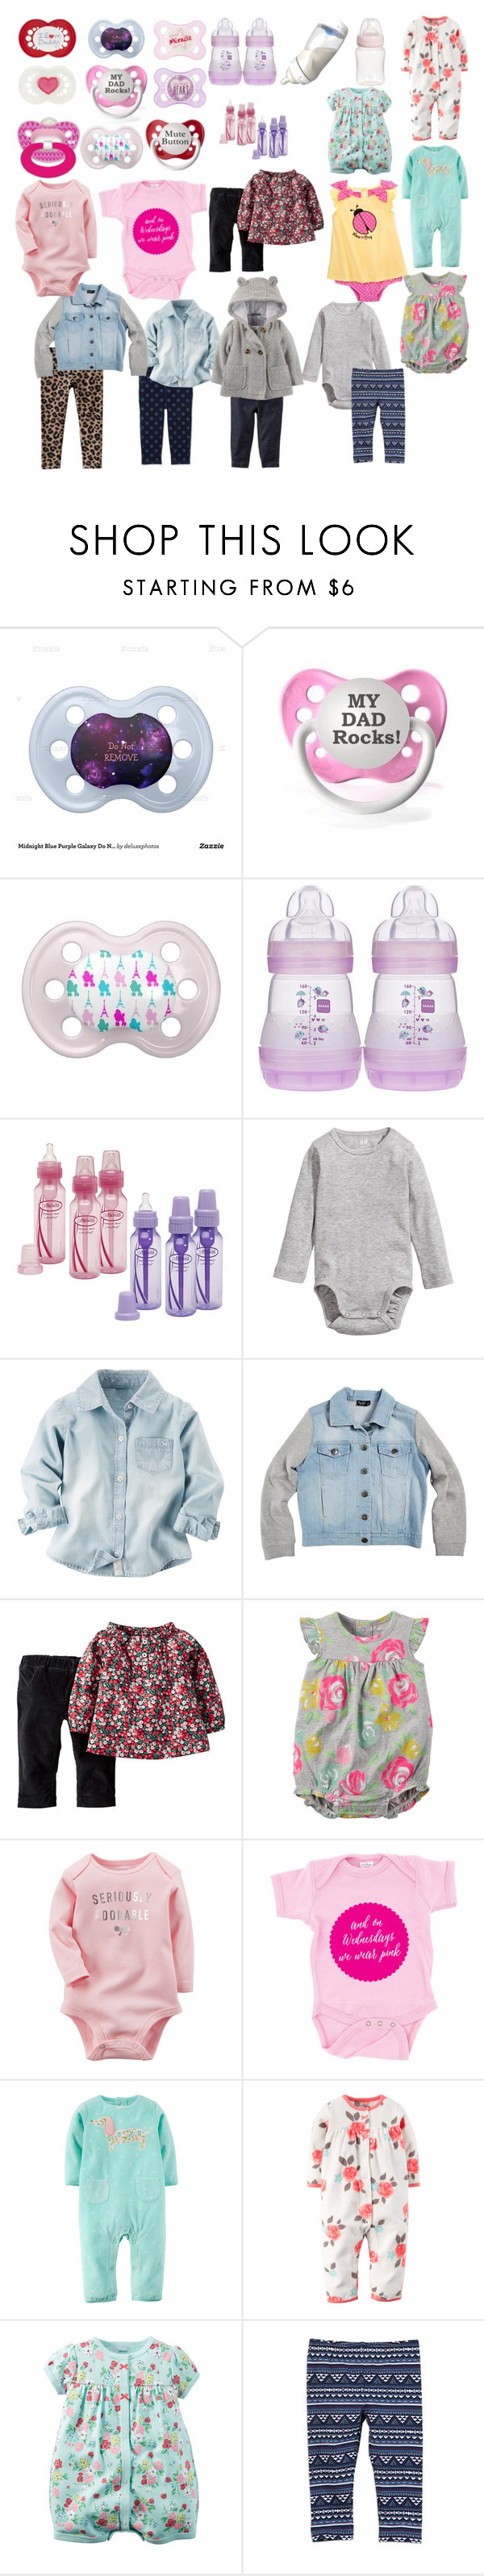 """""""Hailey's baby shower #3"""" by kandresen ❤ liked on Polyvore featuring Playtex, Dr. Brown's, Levi's, H&M and Bardot Junior"""